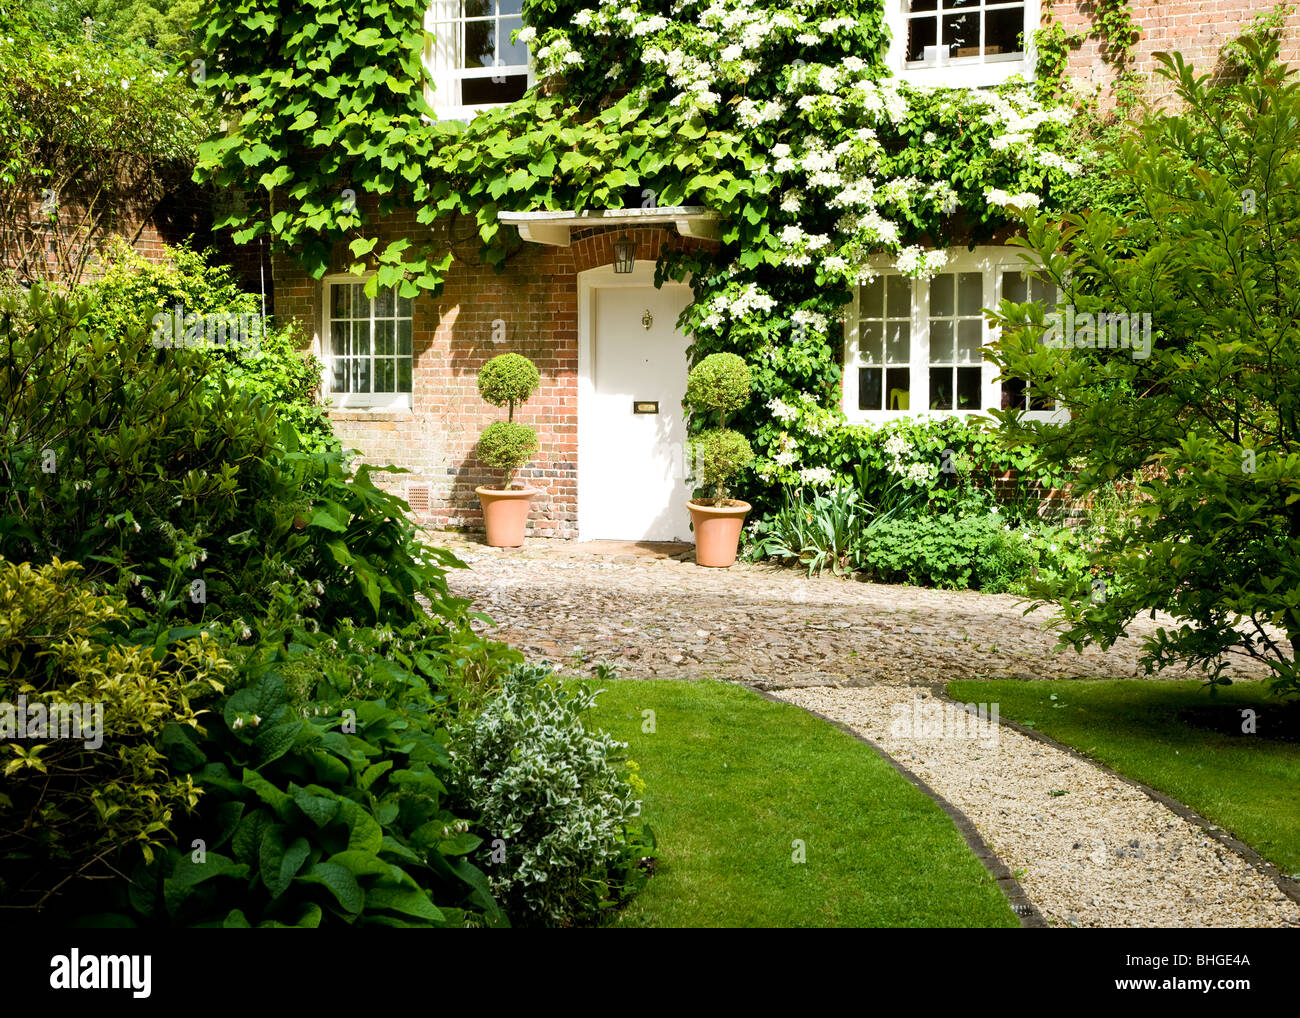 The pretty front door and windows of a typical English country cottage or house, UK - Stock Image